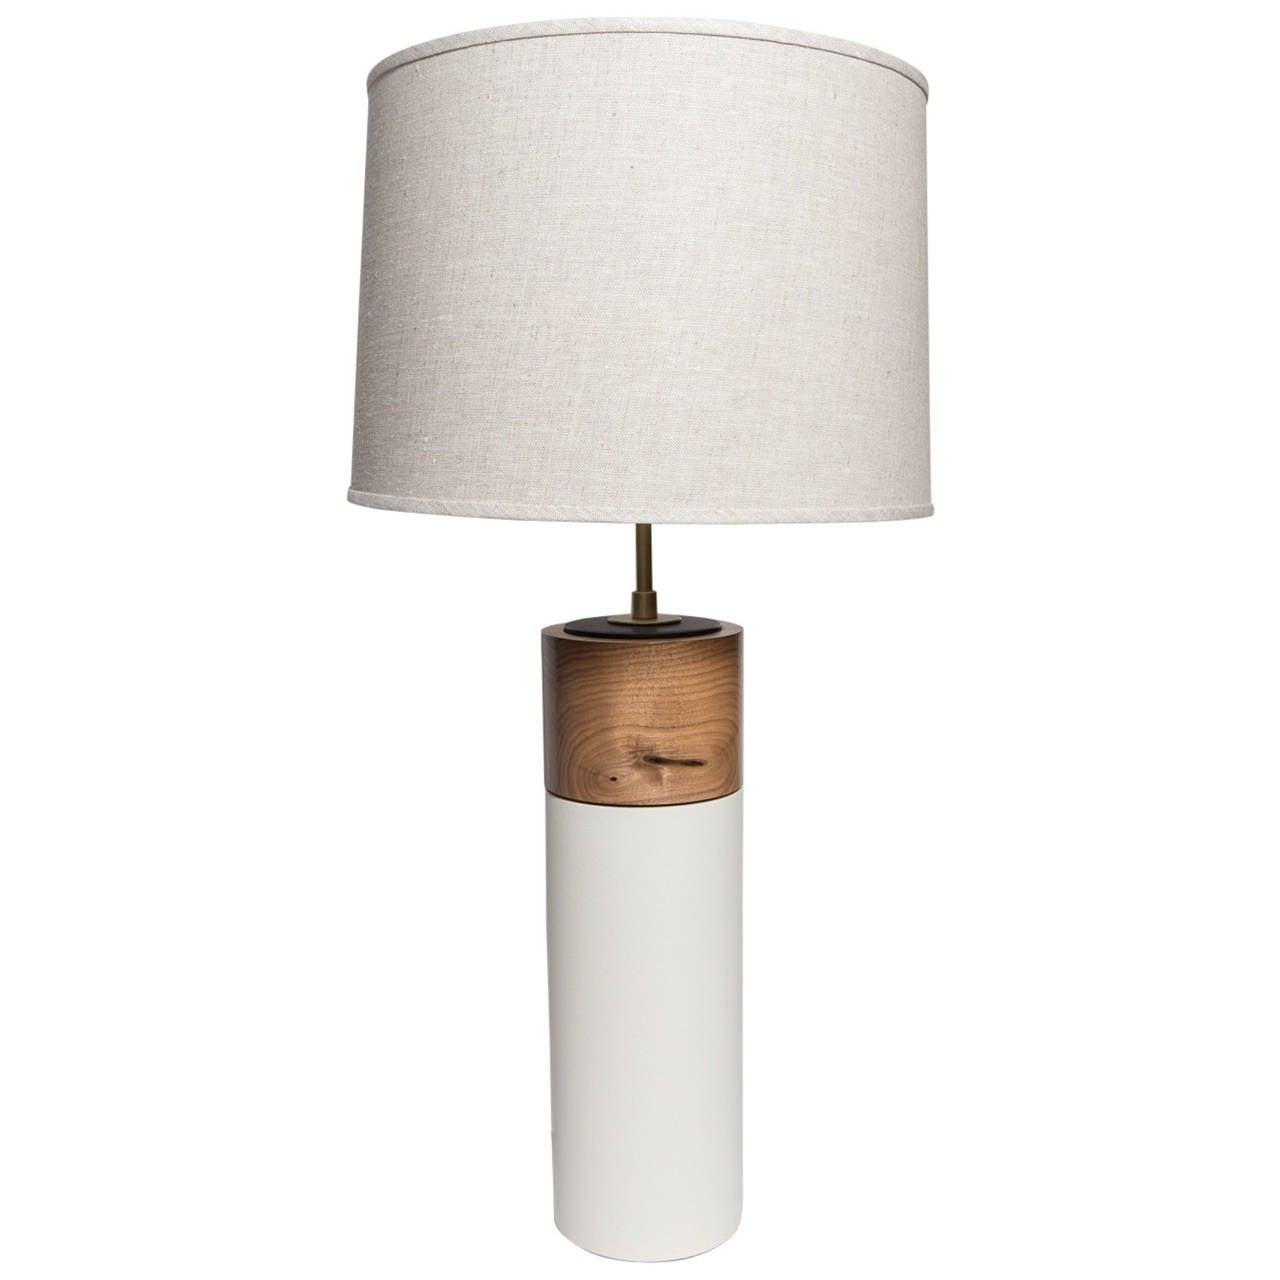 Stone and Sawyer Ceramic and Walnut Table Lamps